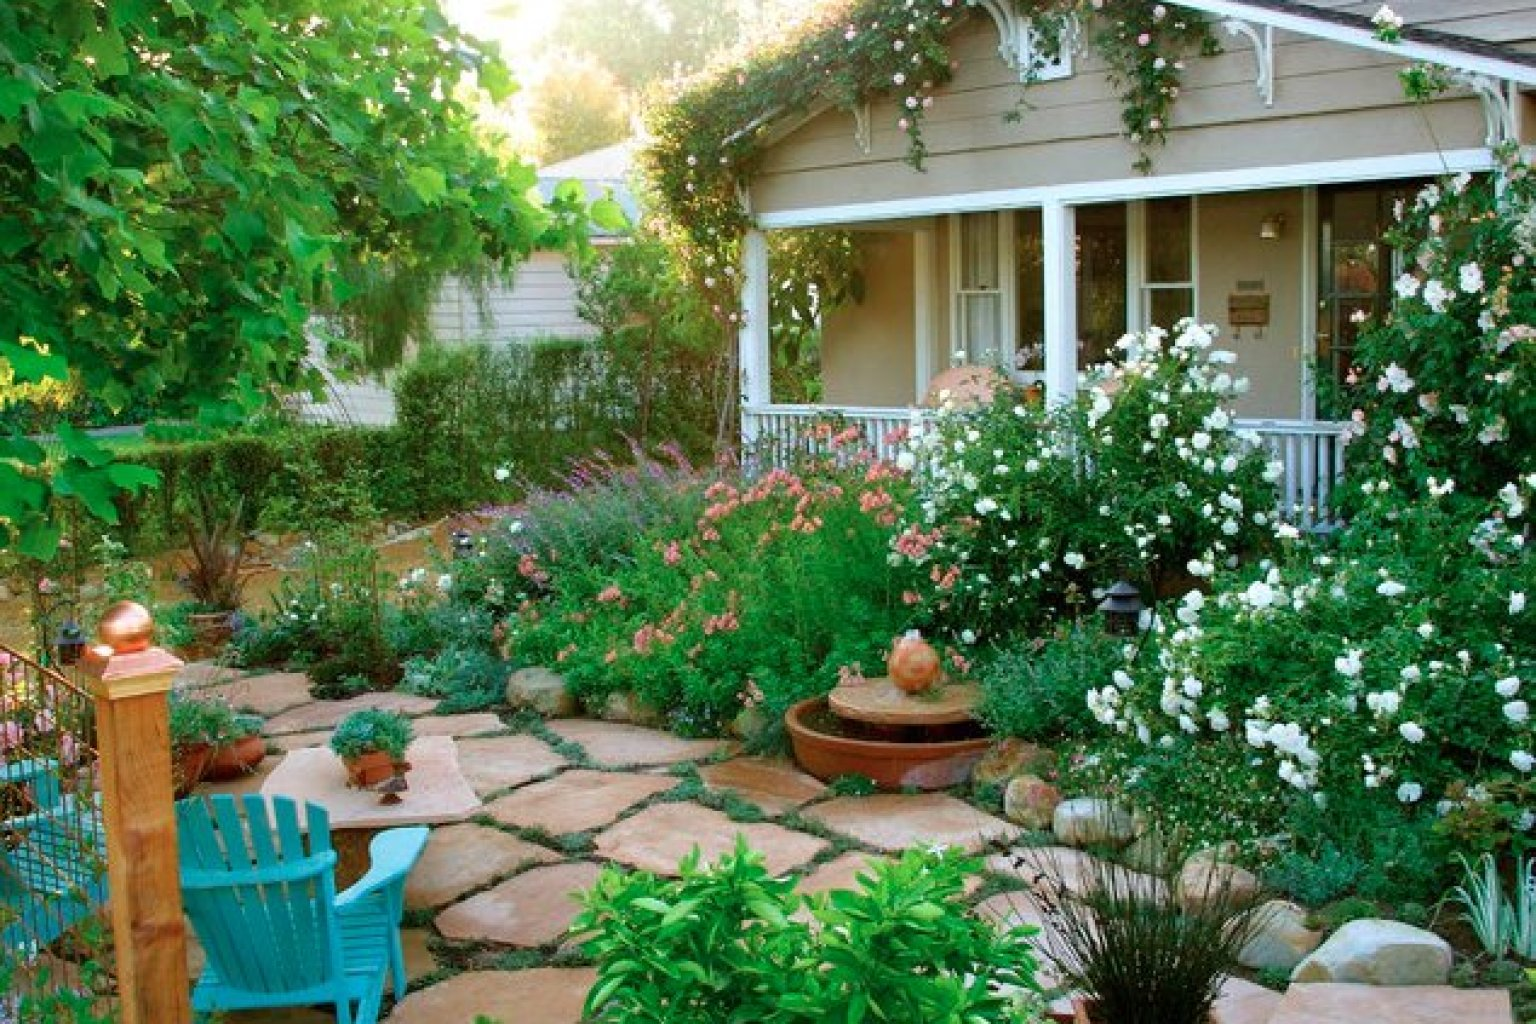 Cottage Garden Designs cottage garden design ideas 10 Cottage Gardens That Are Just Too Charming For Words Photos Huffpost